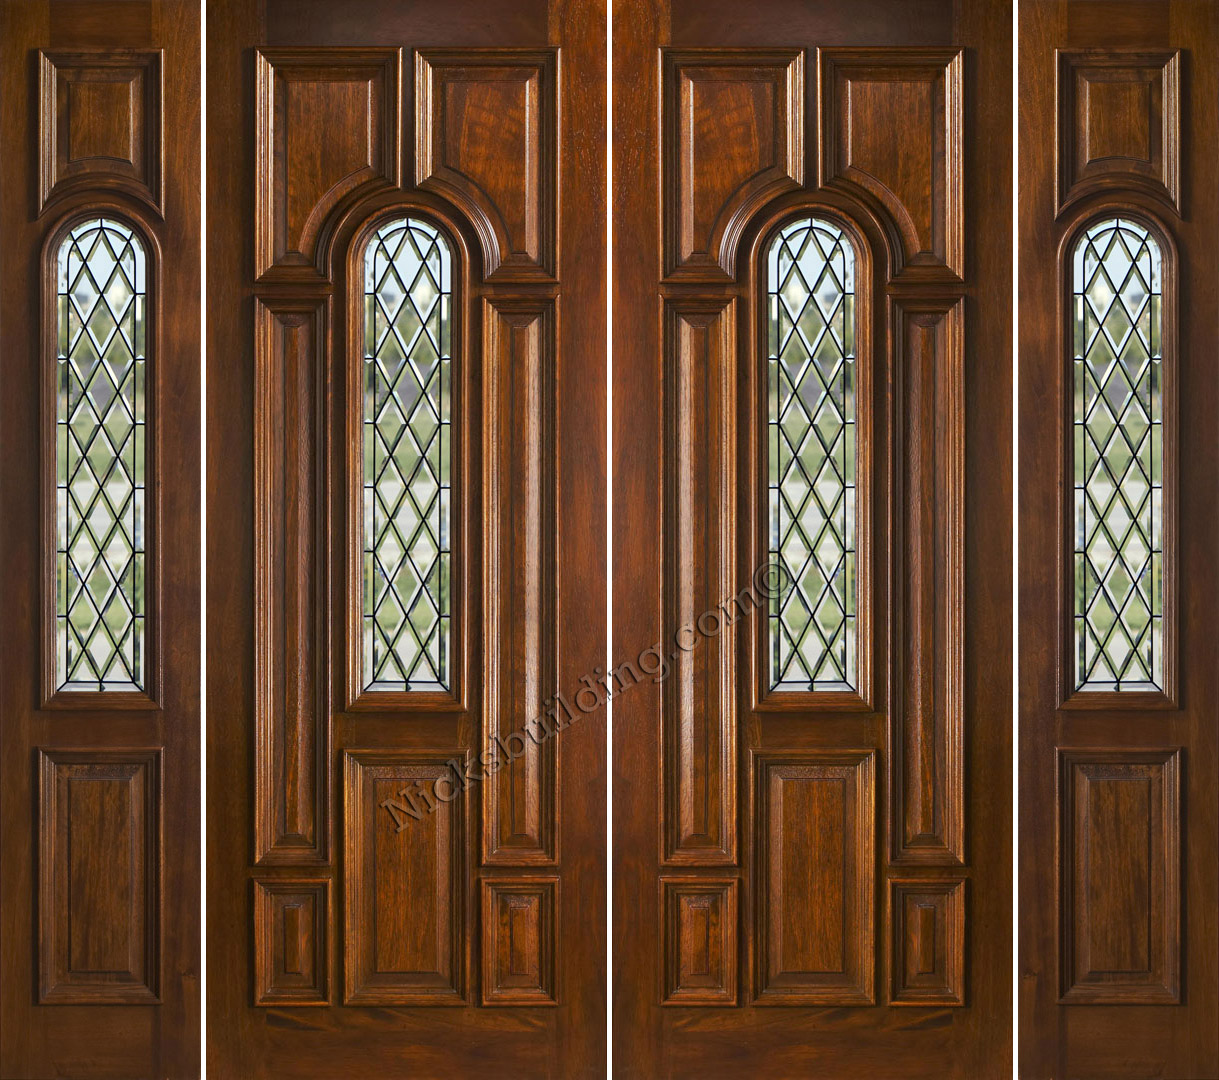 1080 #683B1D N525 Double Doors And Sidelights With Chateau Glass save image 8 Foot Front Doors 43771219